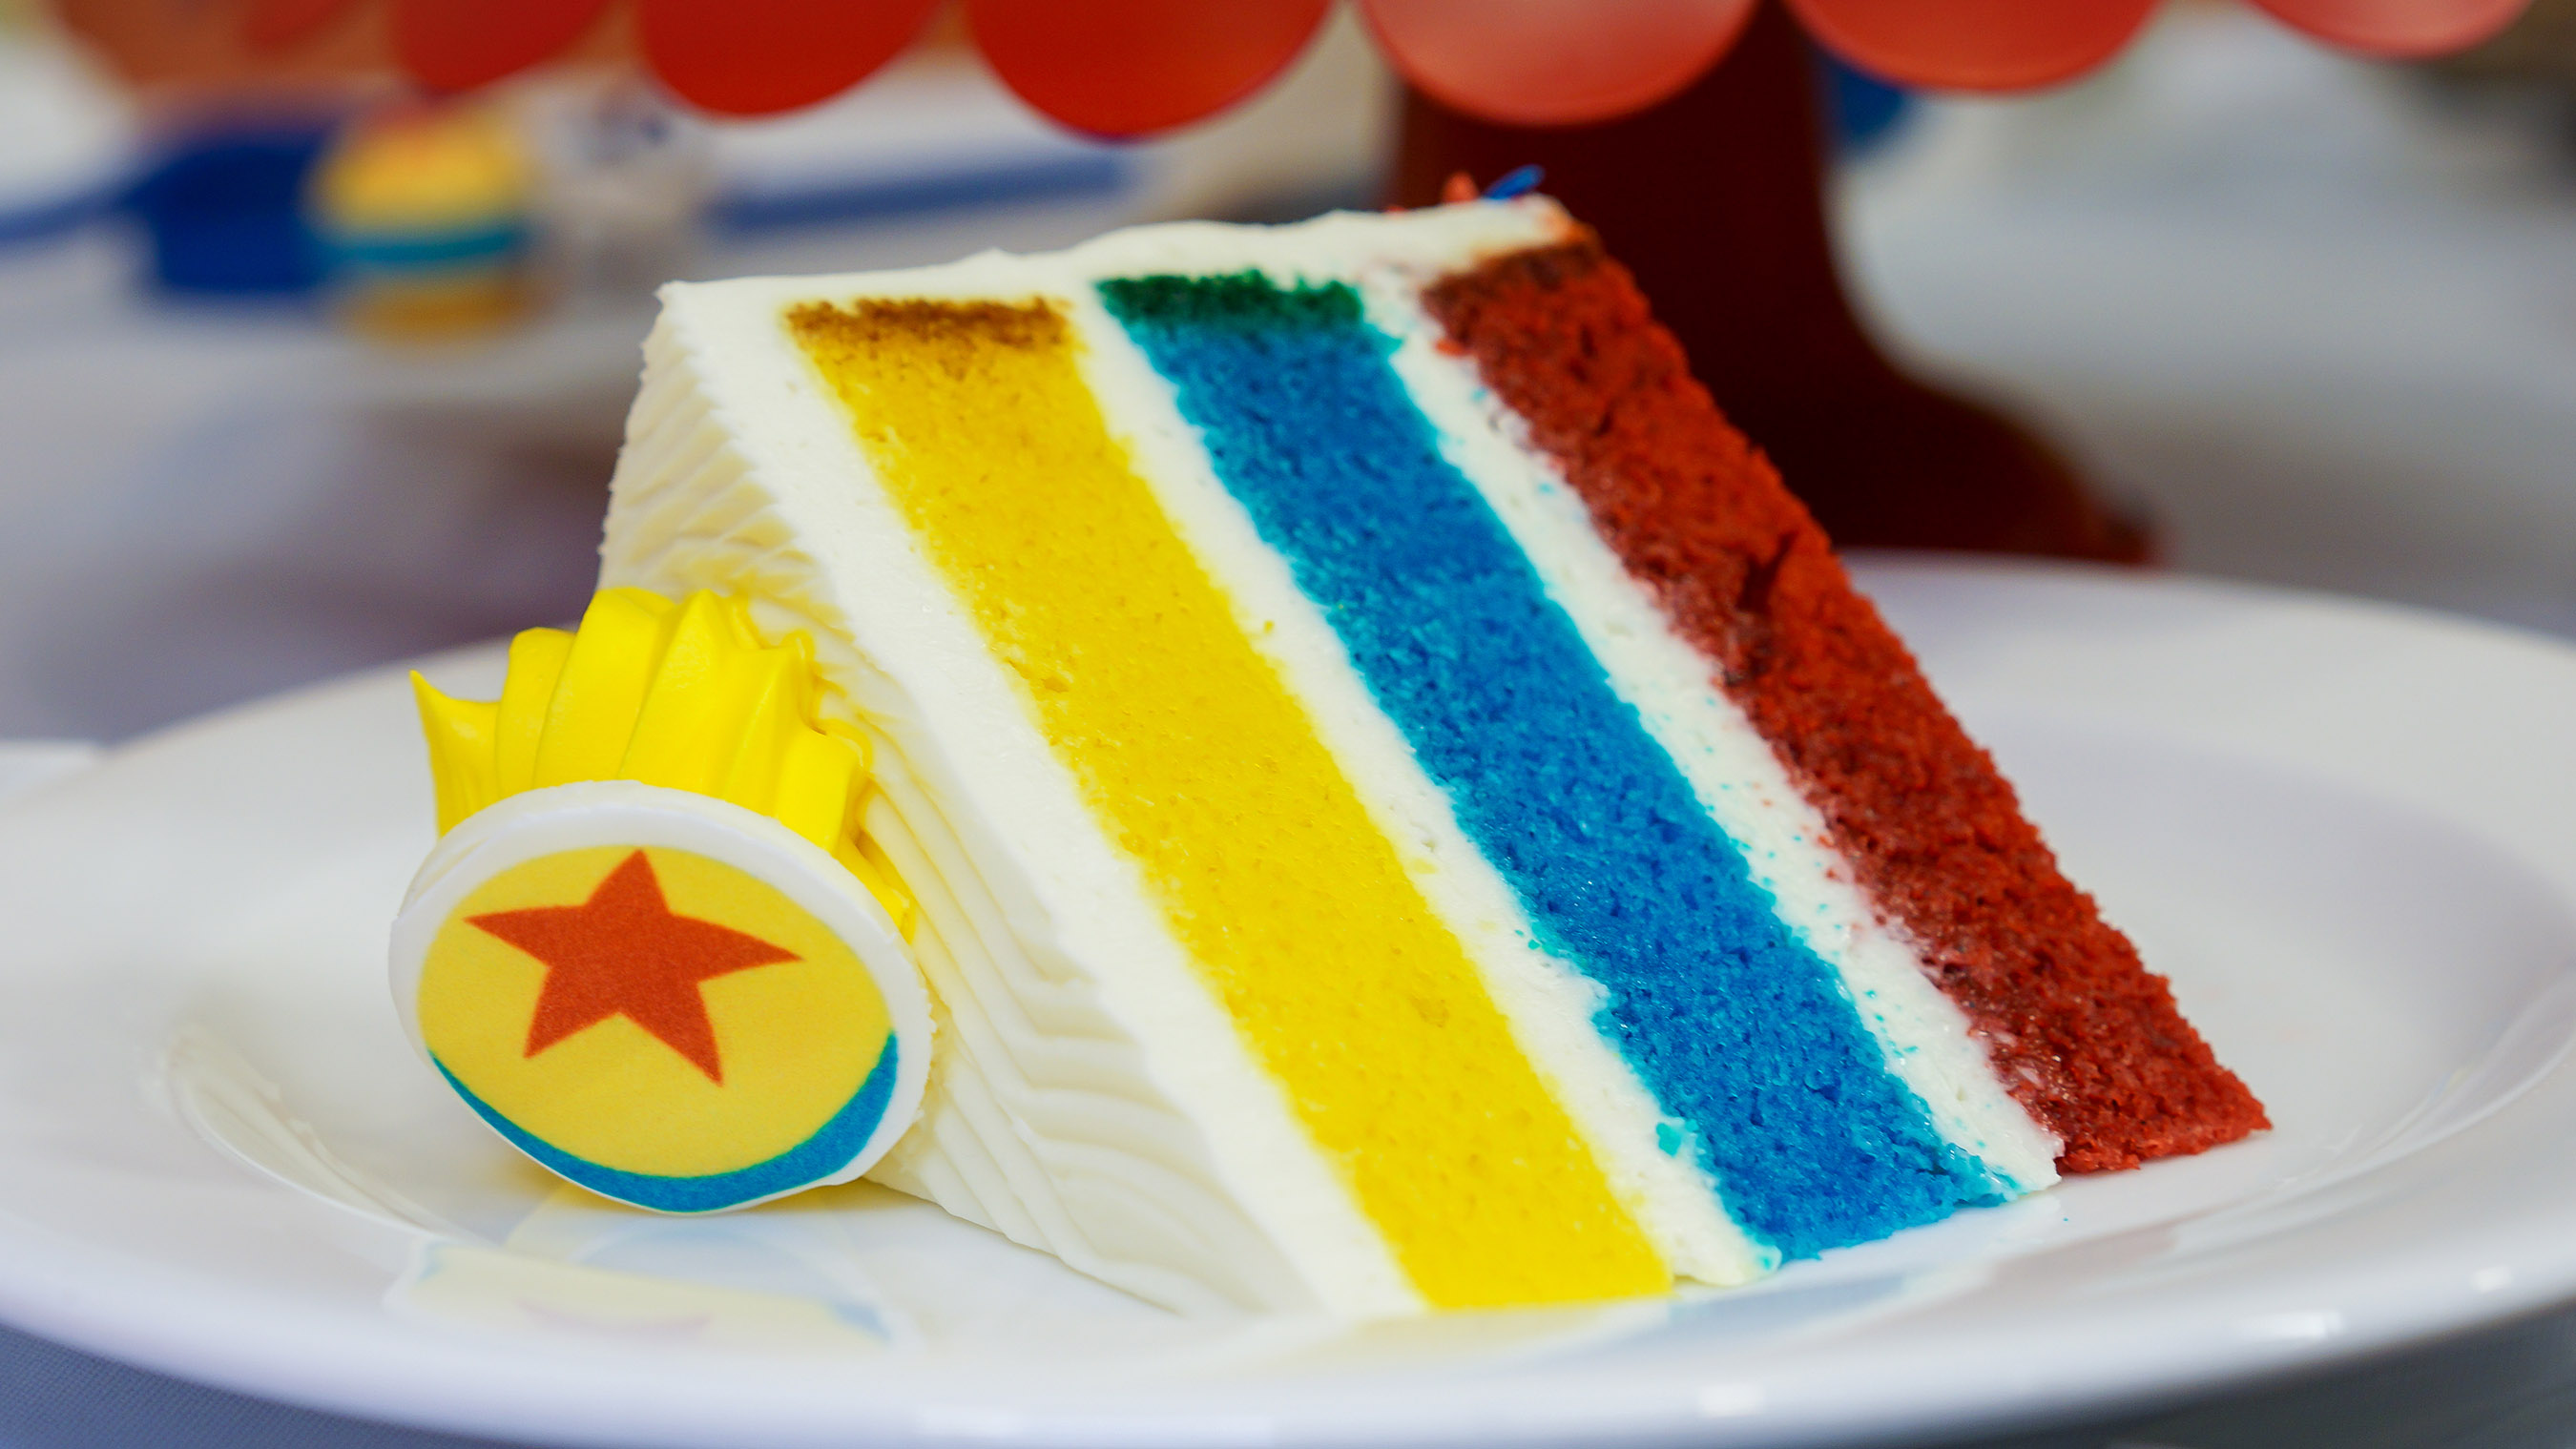 A Colorful Collection of Pixar Fest Food Revealed